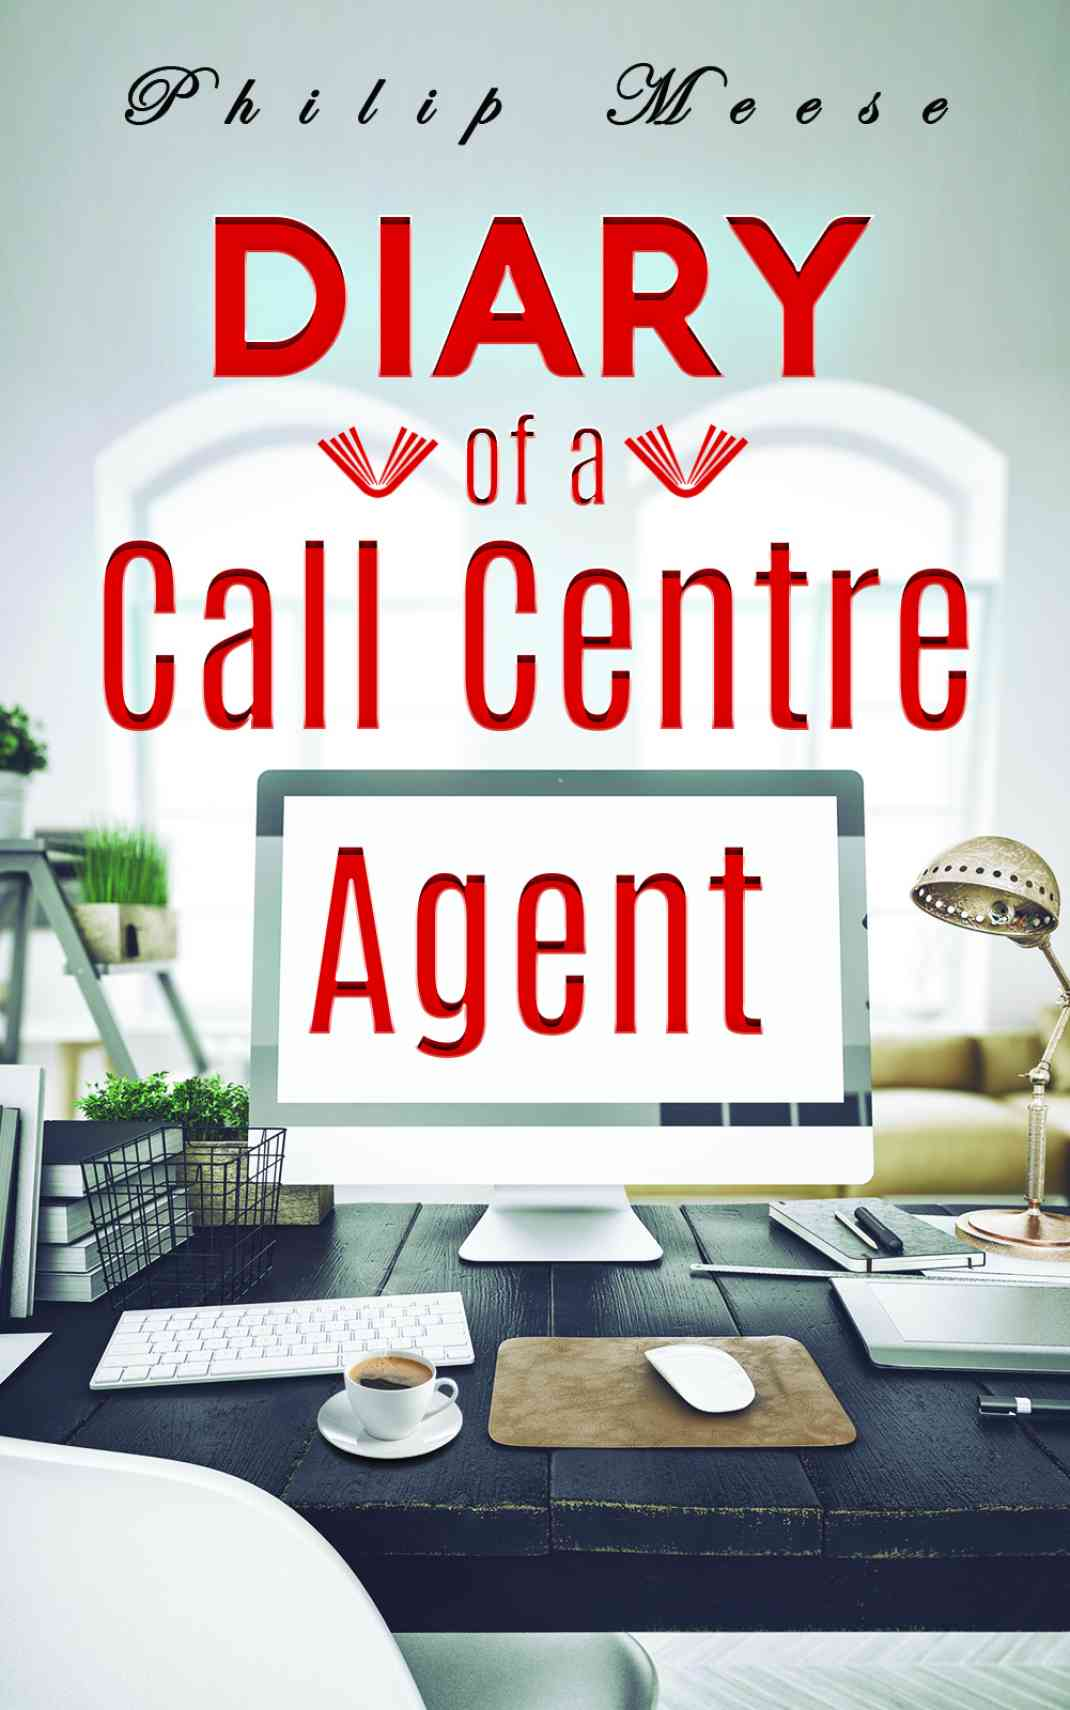 Diary of a Call Centre Agent   Book  Austin Macauley Publishers